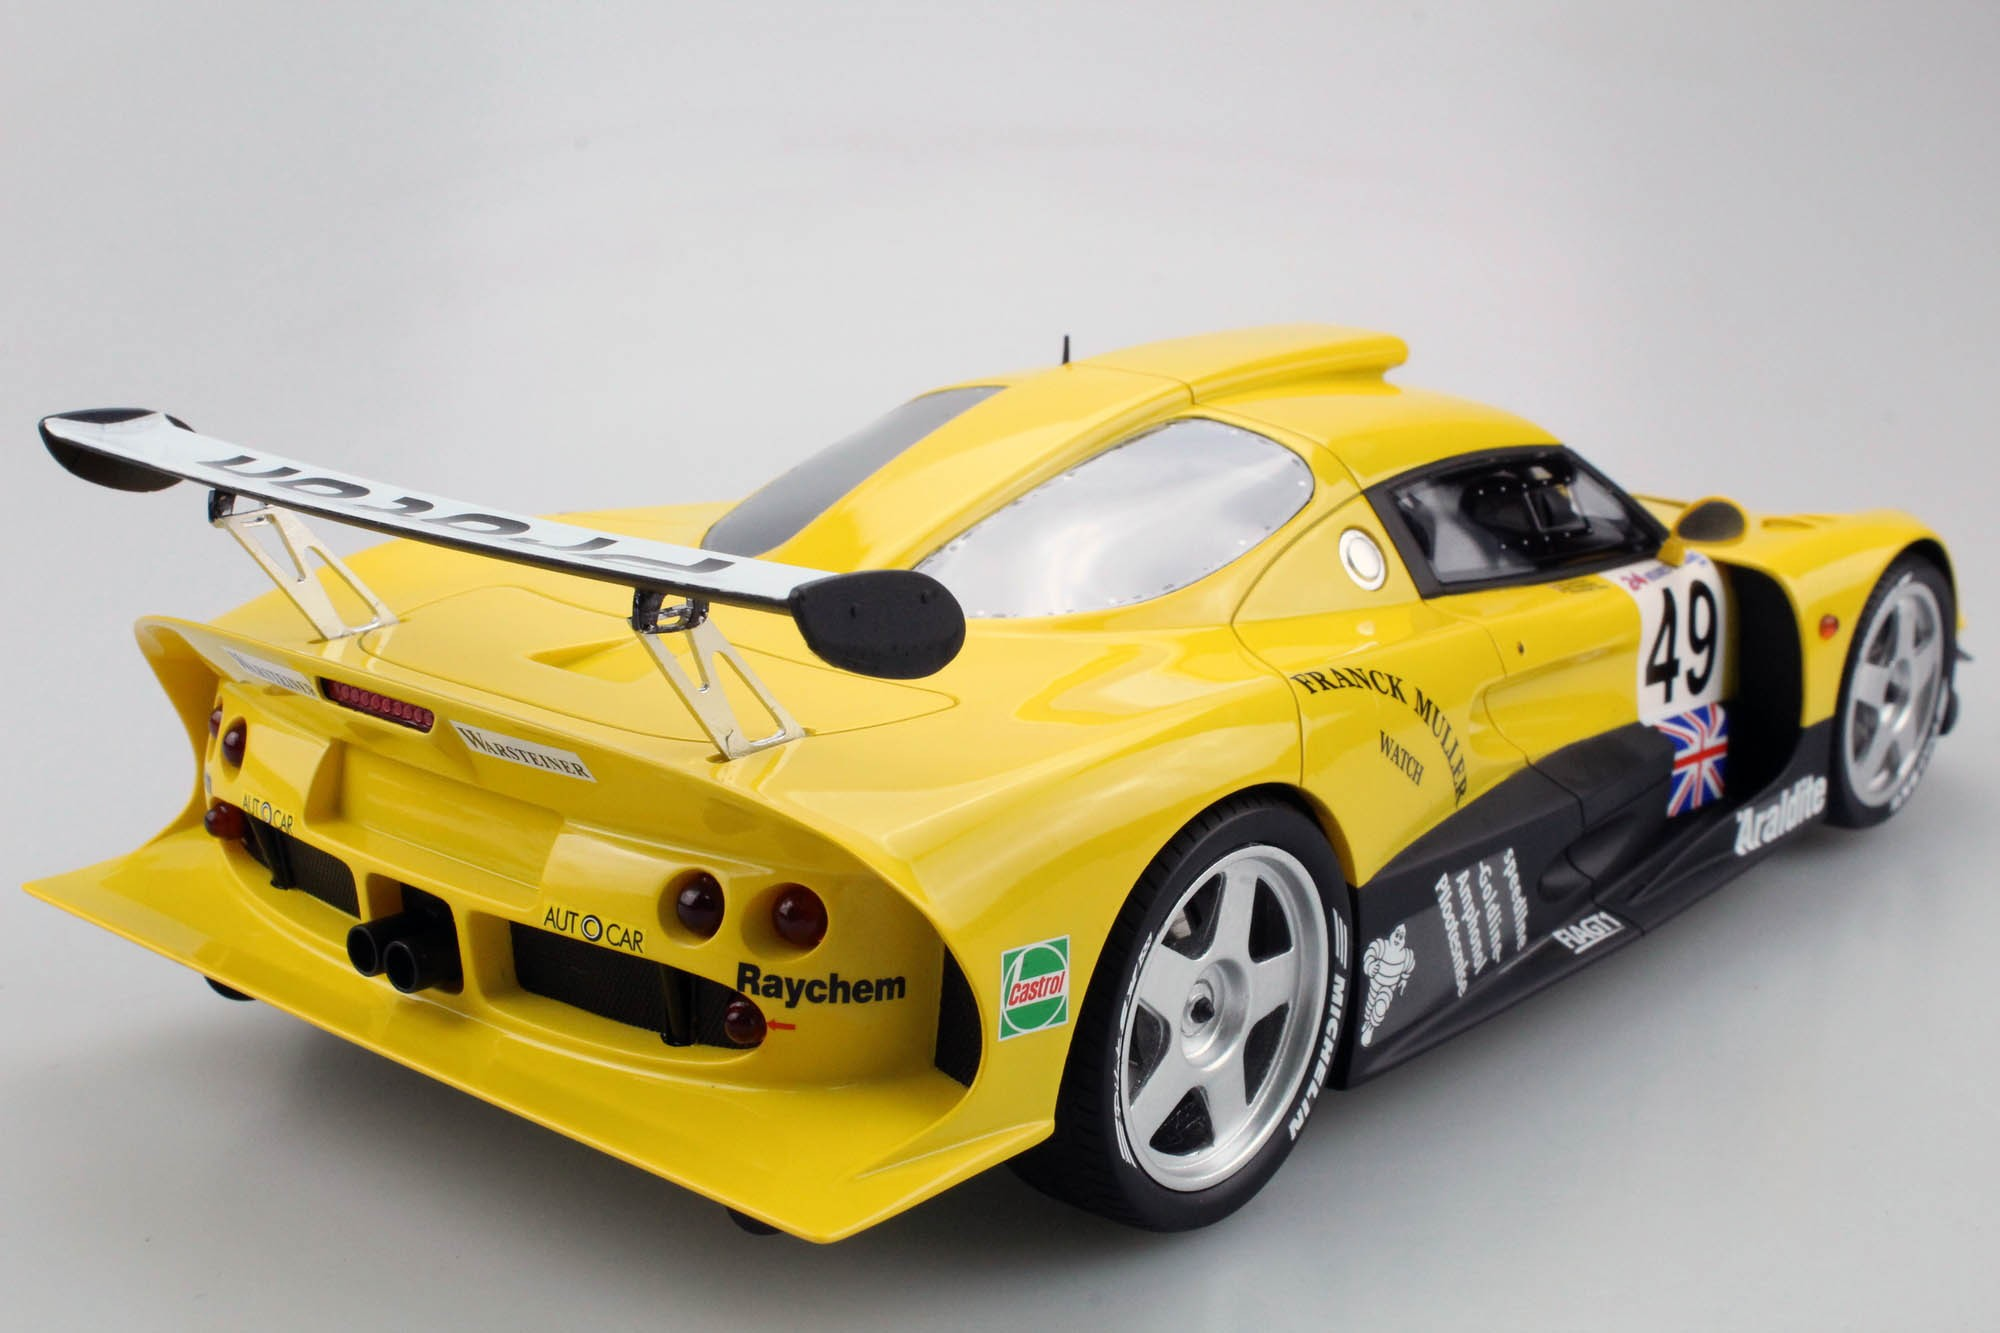 Top Marques Collectibles Lotus Elise Gt1 Yellow Green Racing Pre Order Jan Lammers Mike